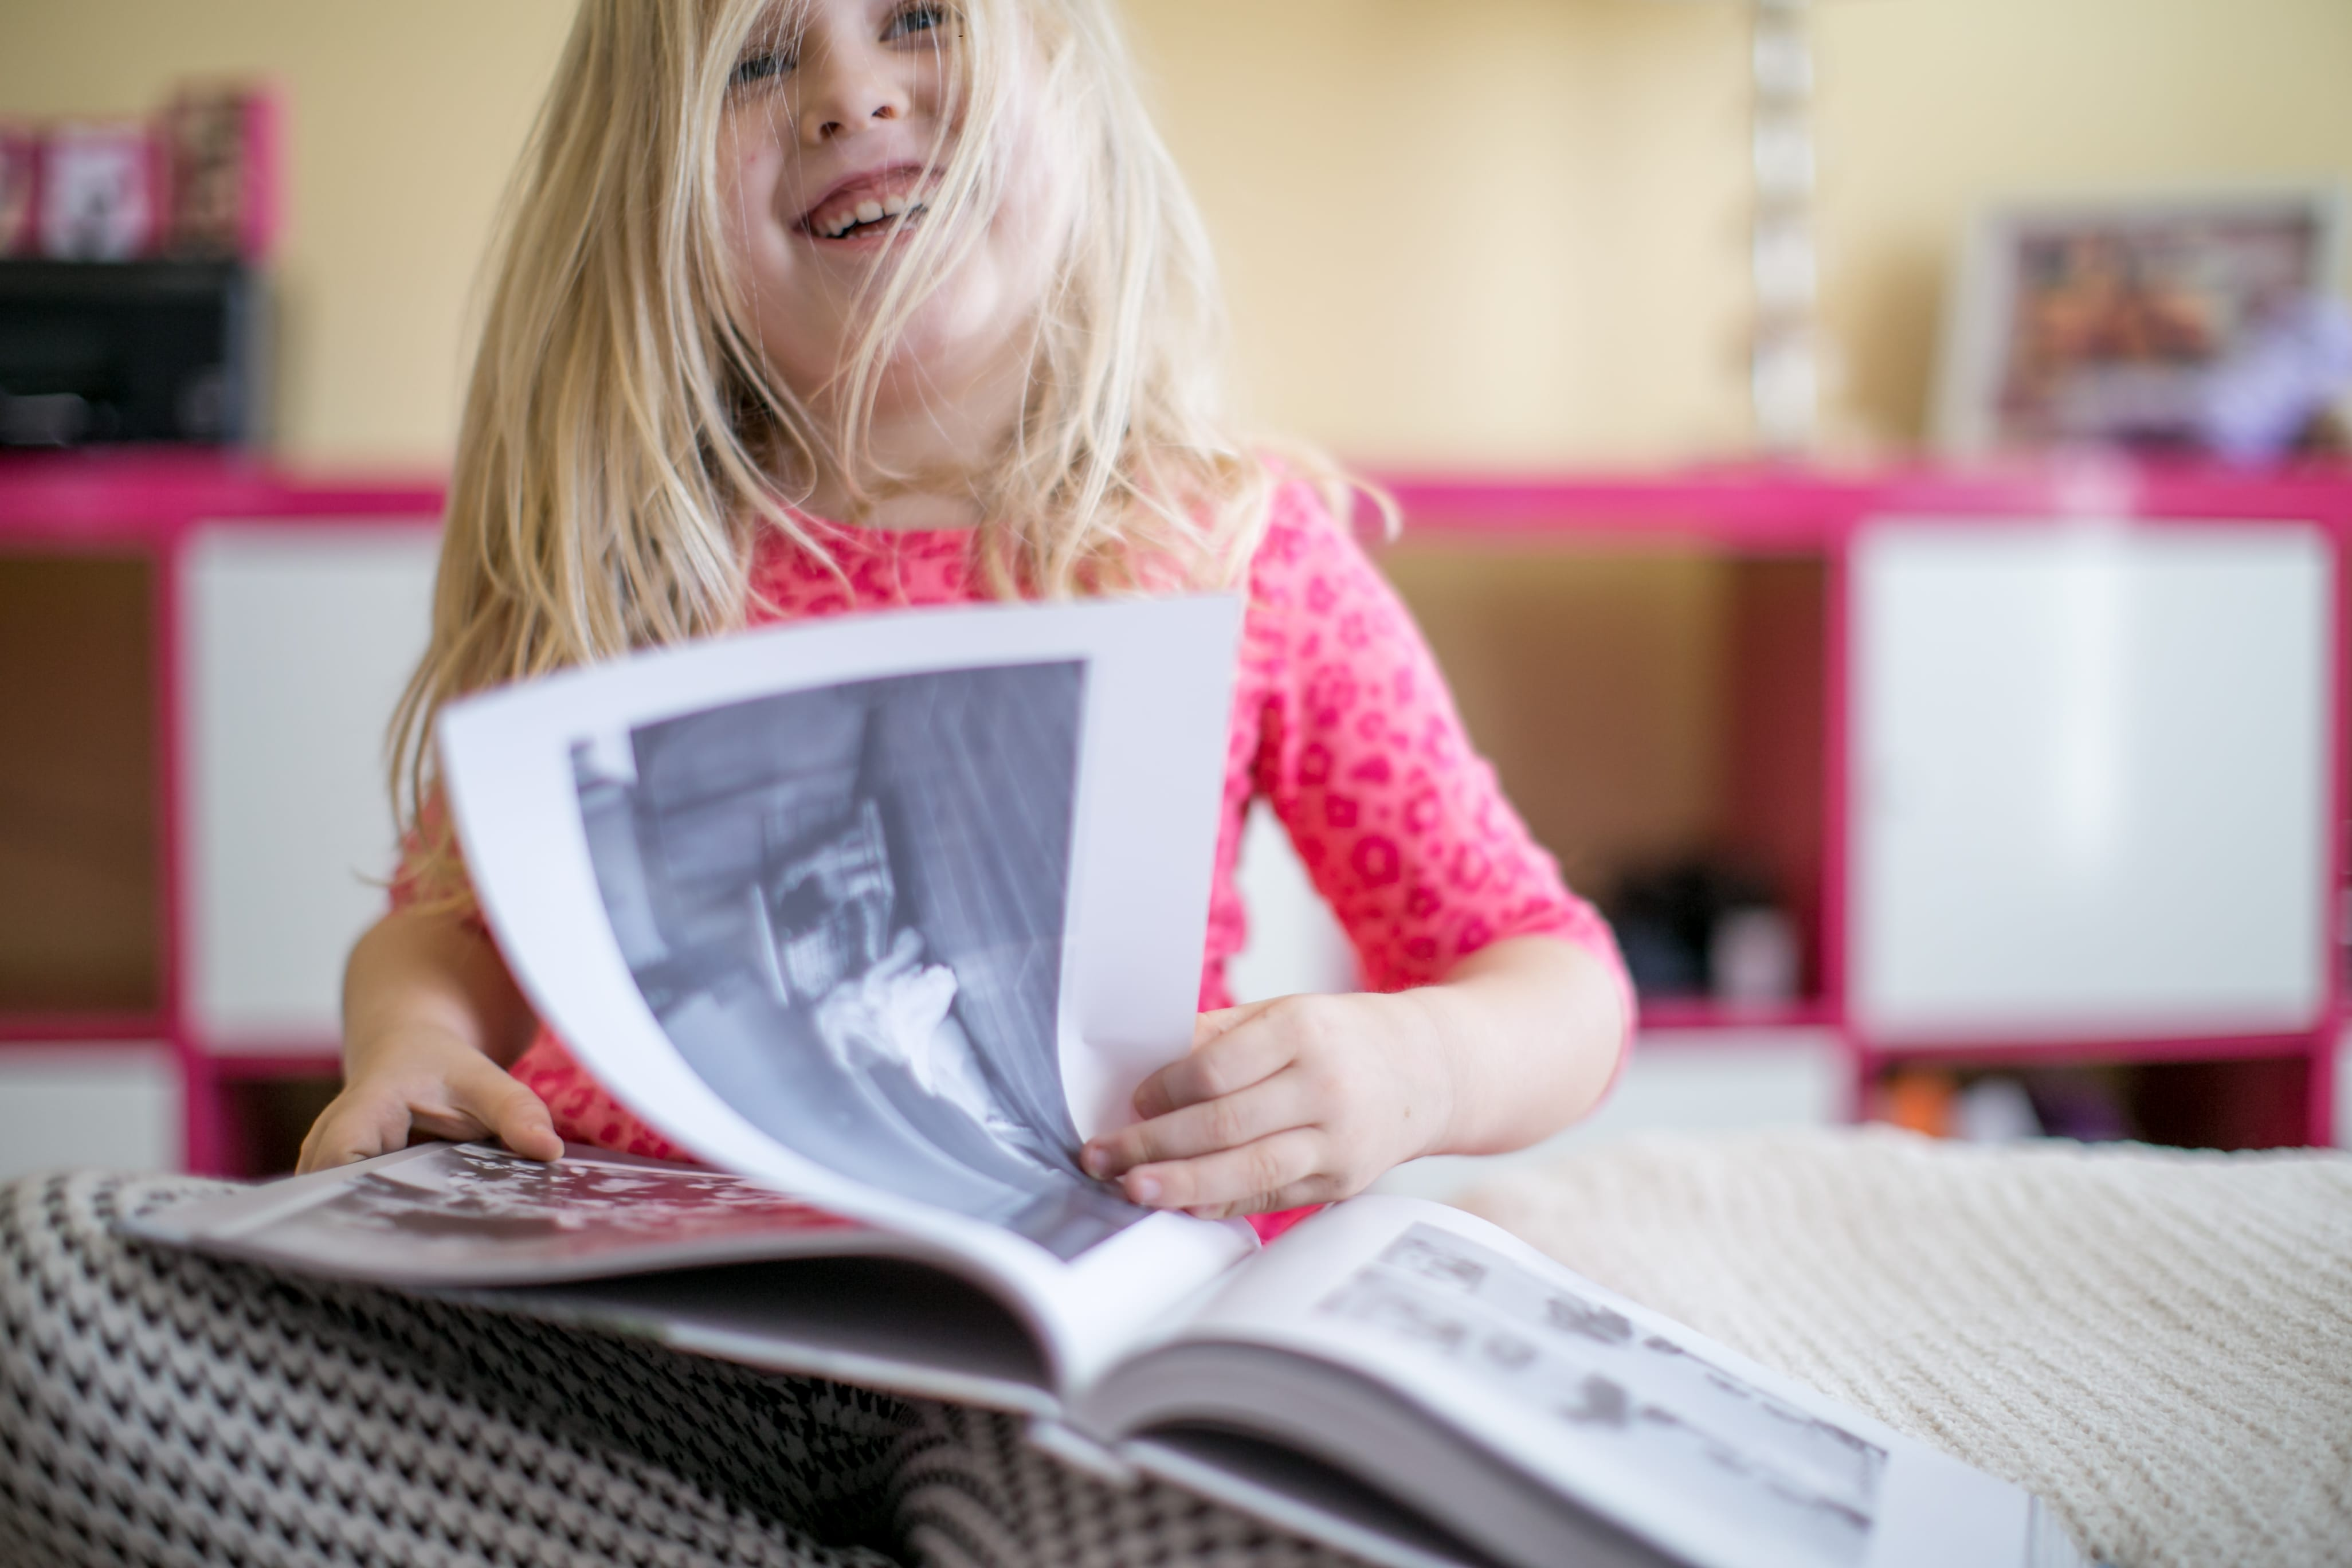 Printed photos bottle up happy feelings and allow us direct access to those emotions when we need them most. | 4 tips to help you FINALLY print your photos!